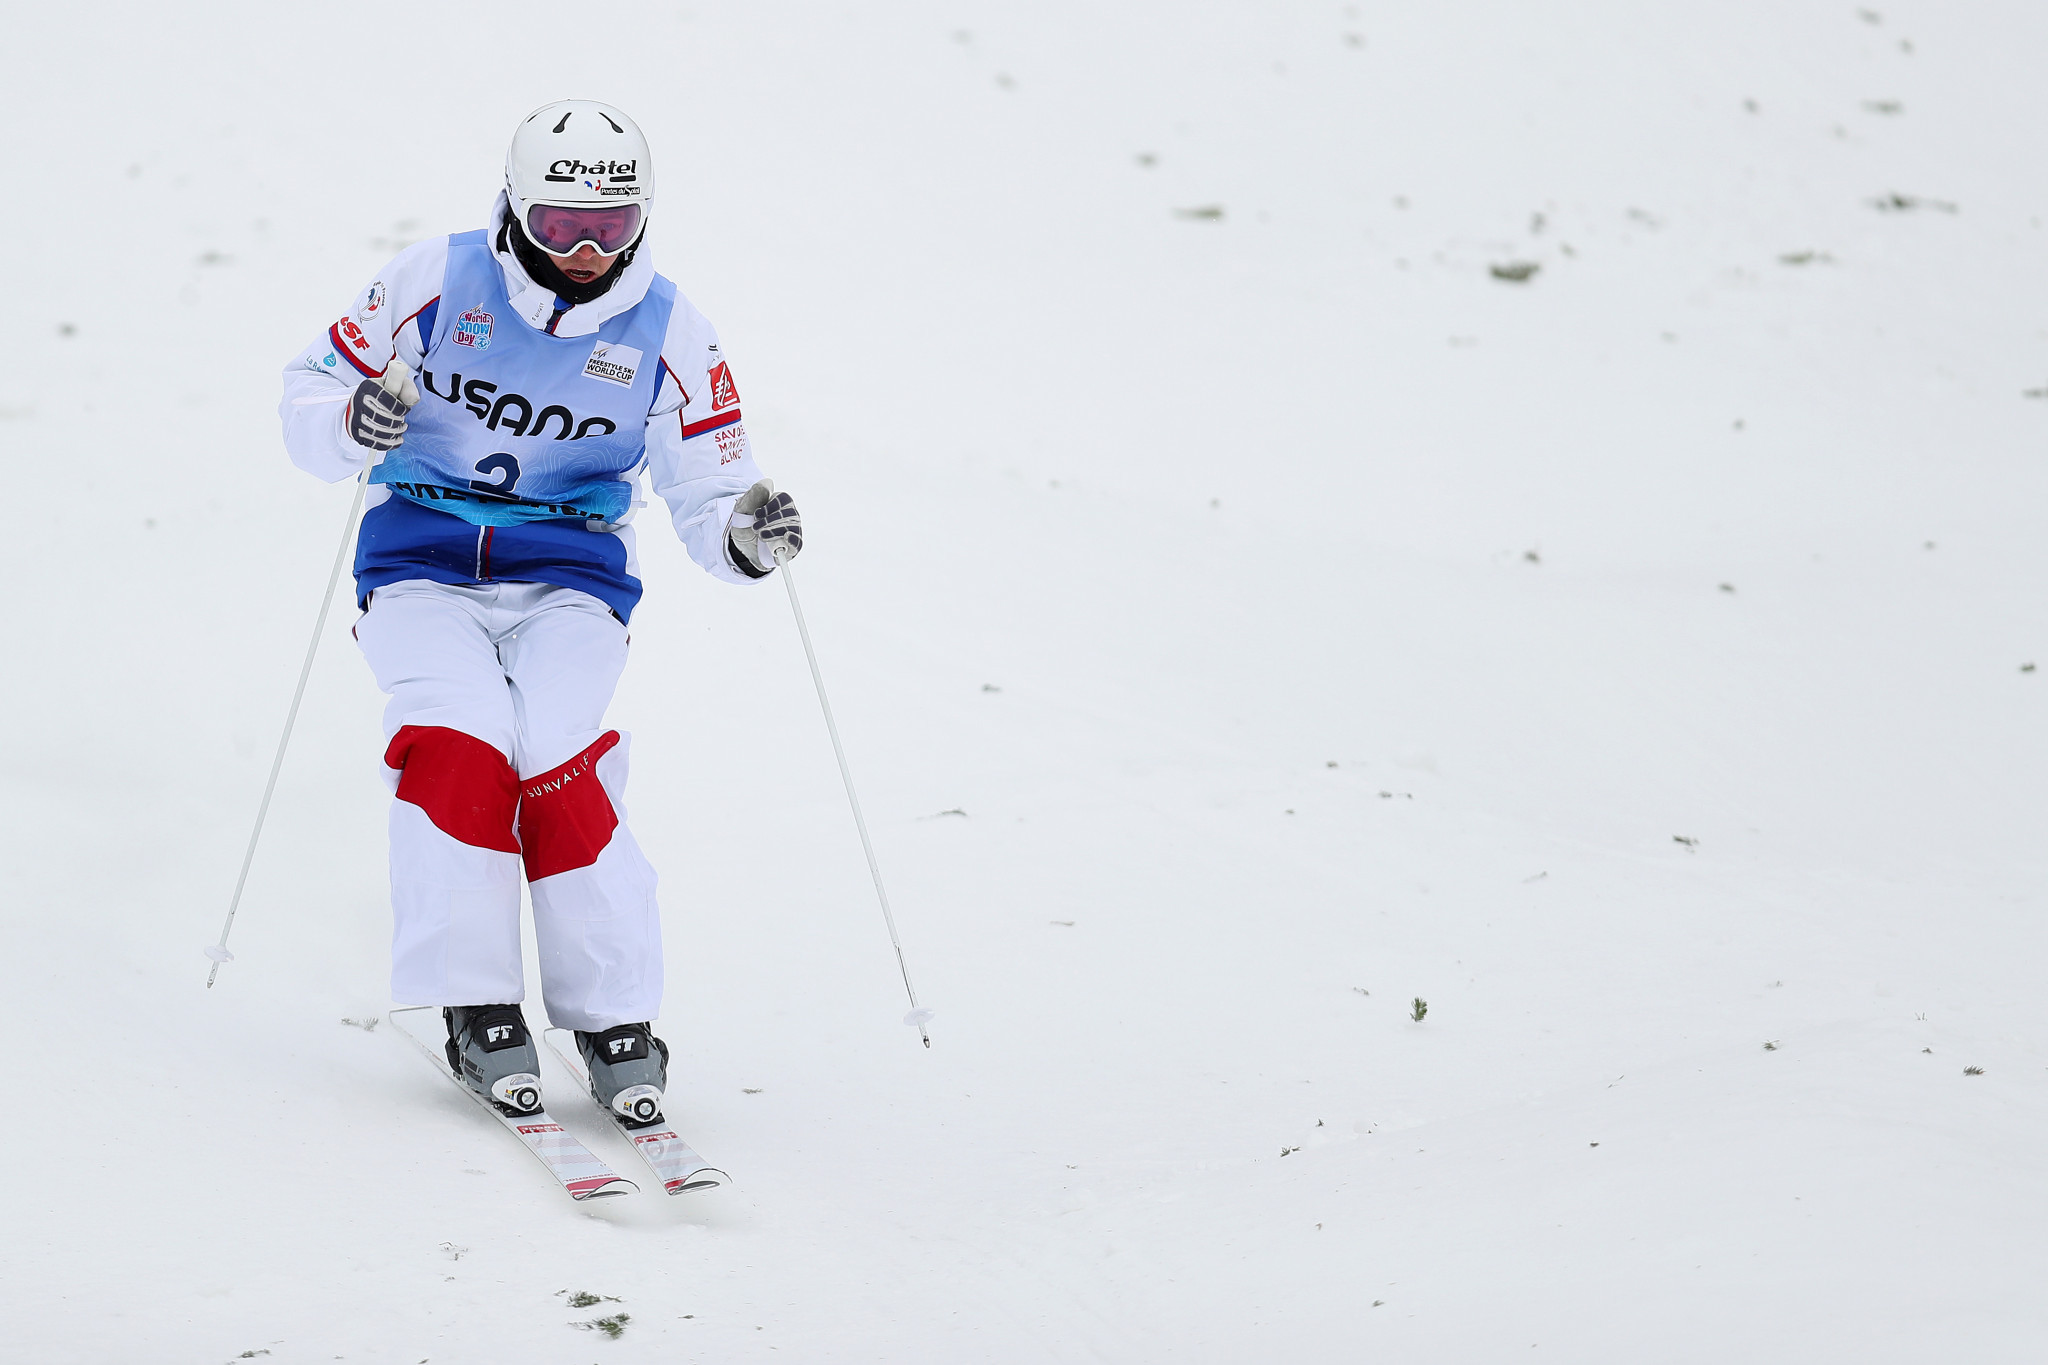 Anthony and Cavet clinch maiden FIS Moguls World Cup victories in Lake Placid